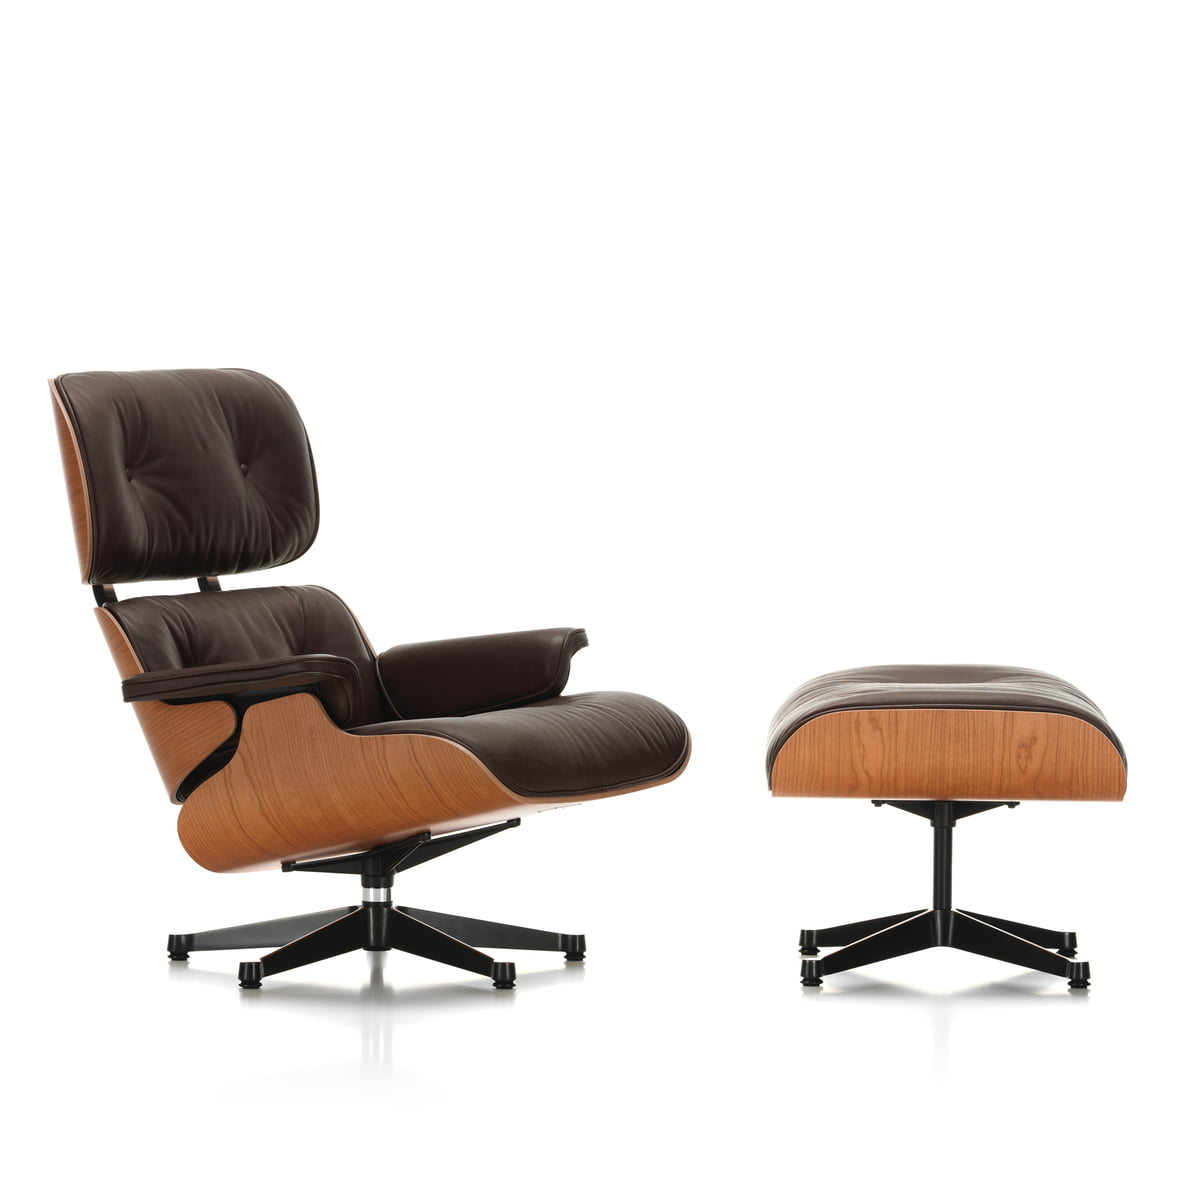 Lounge Designer Furniture: Vitra Lounge Chair & Ottoman